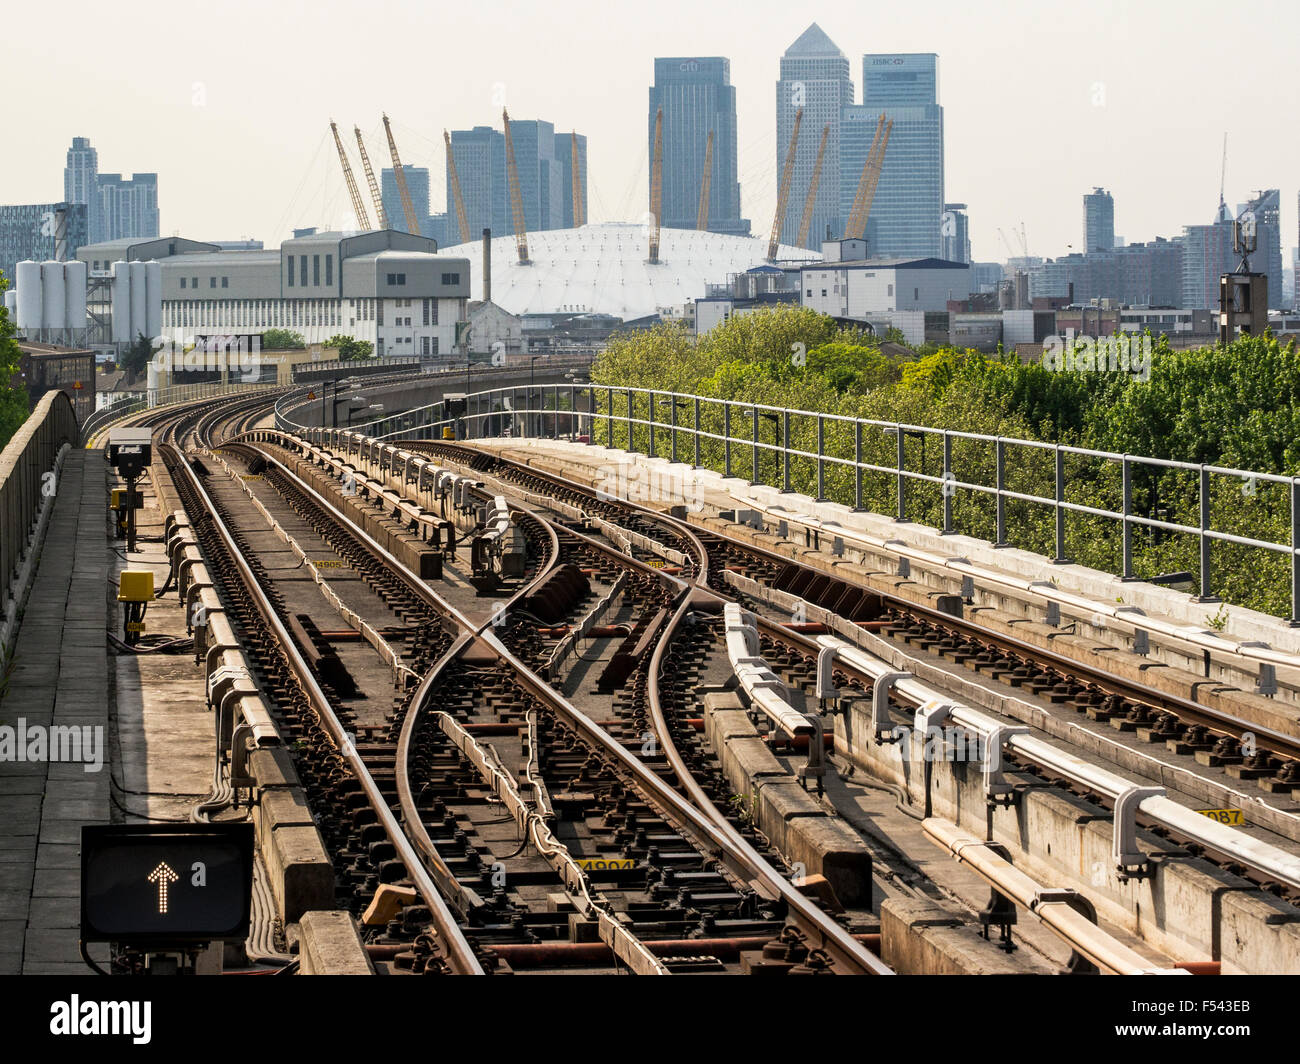 Dockland Light Railway tracks heading towards Canary Wharf and the City with the O2 centre in the foreground - Stock Image